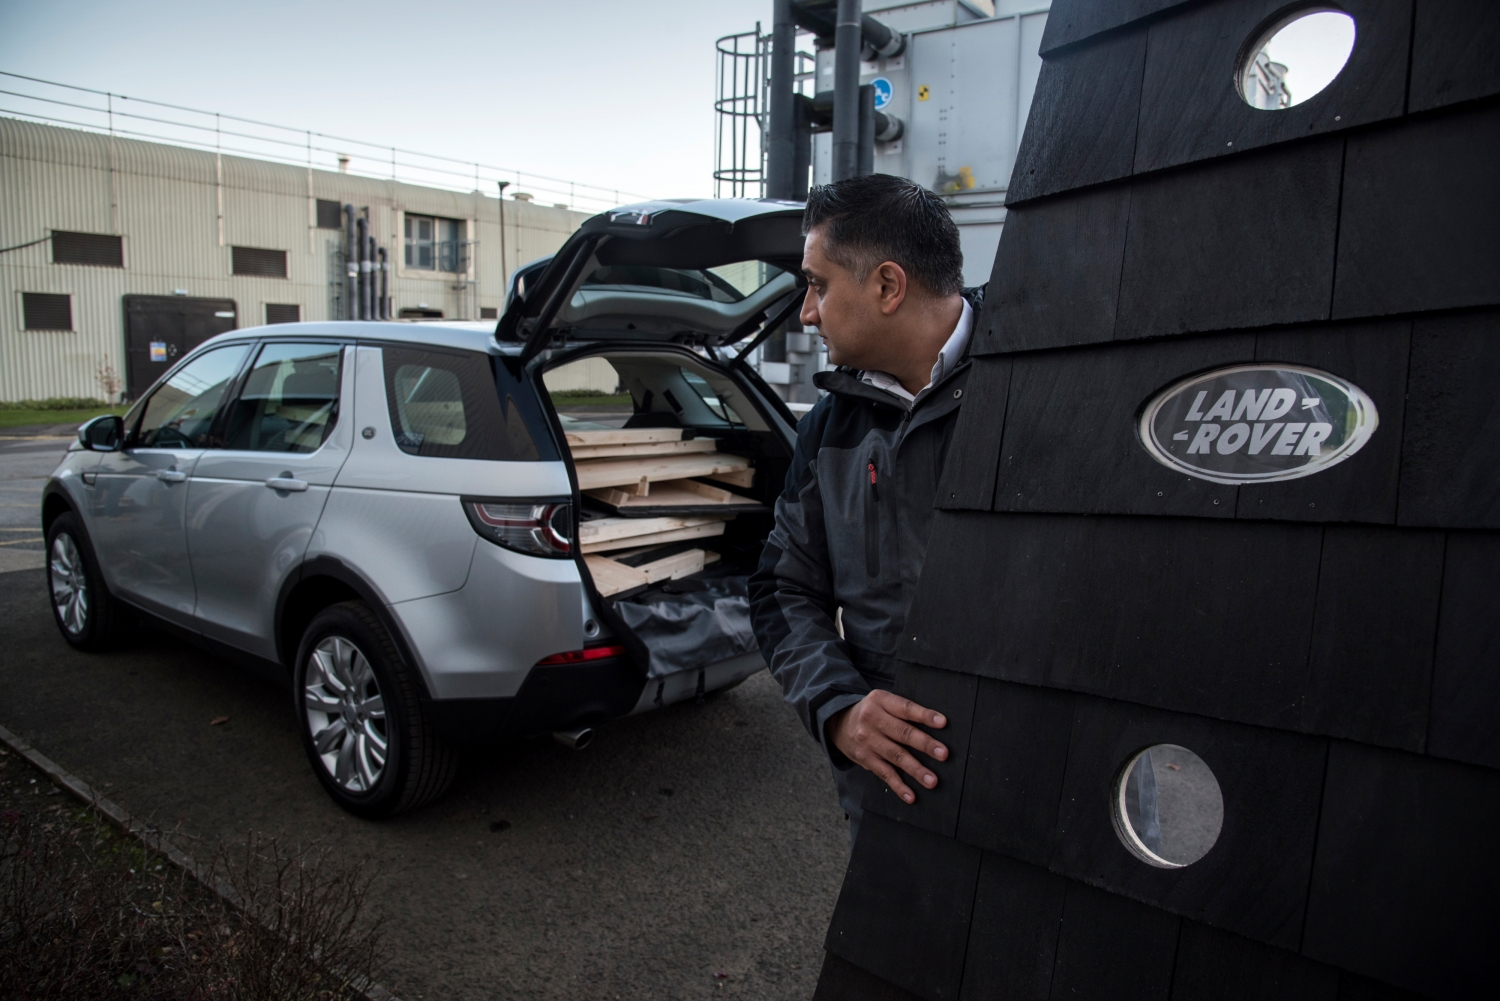 LAND ROVER BUILDS COMPACT CHRISTMAS CABIN FOR SANTA